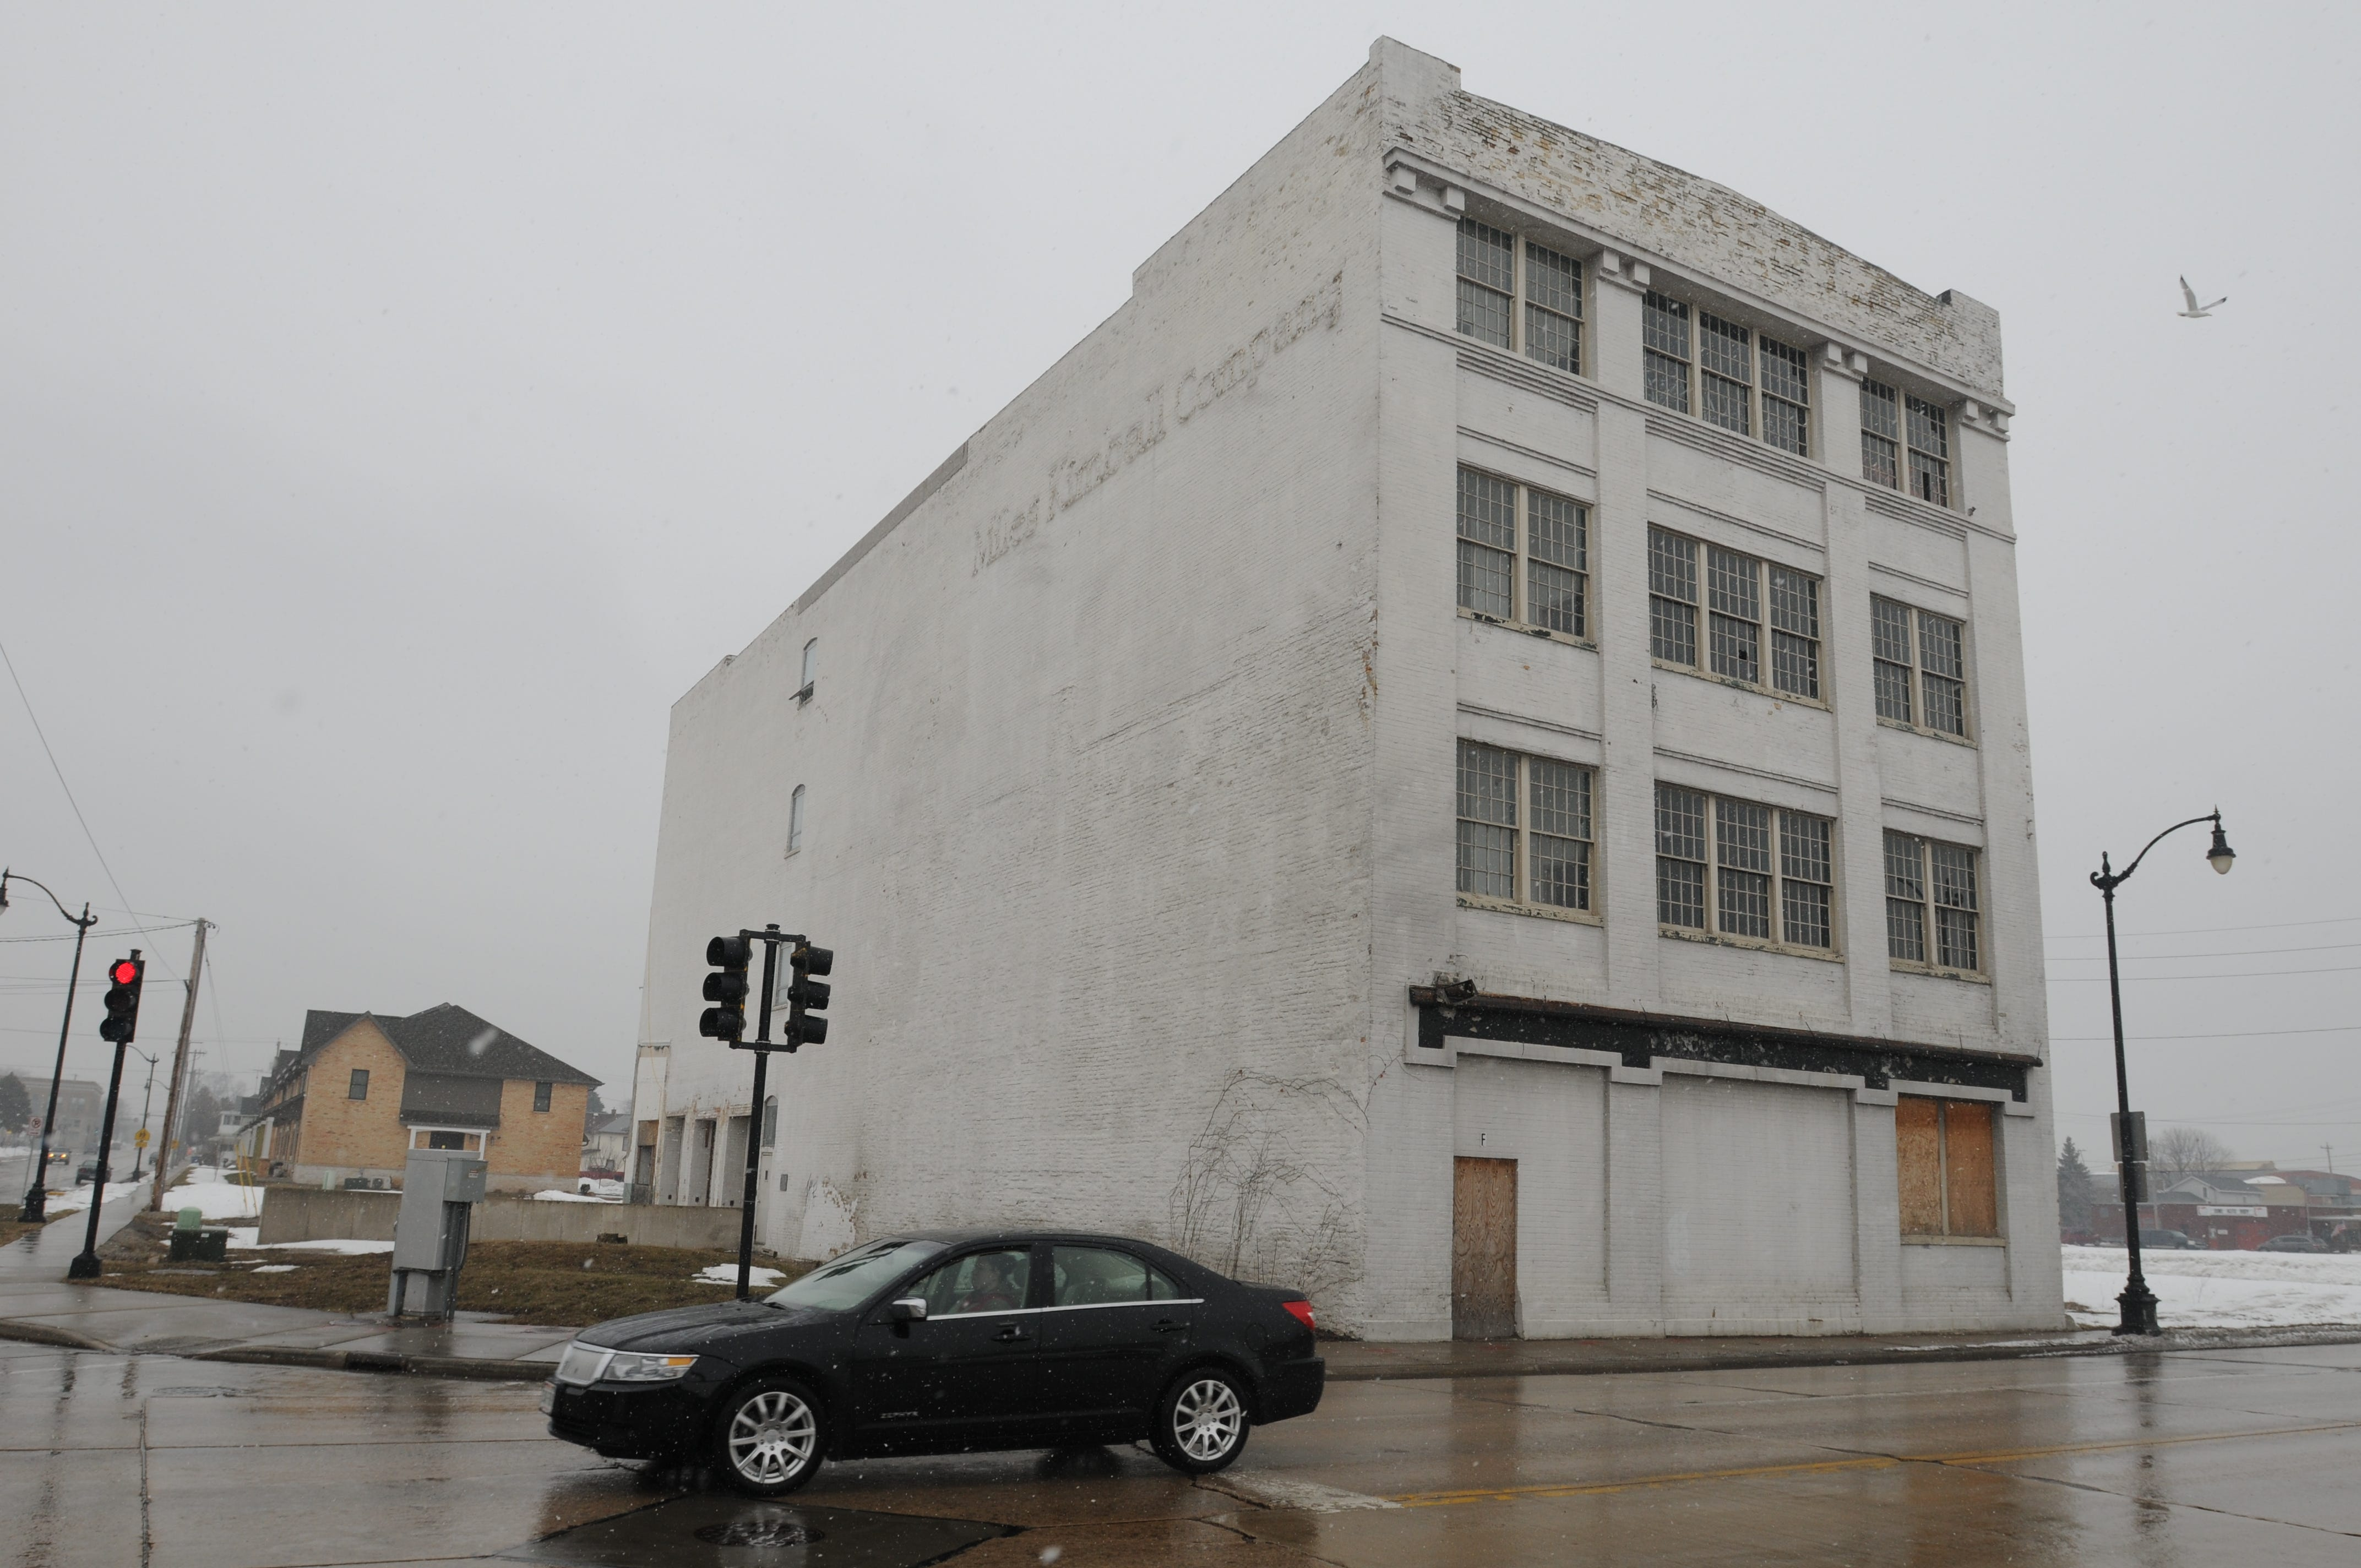 Oshkosh Common Council to consider proposal to develop former Miles Kimball building Image